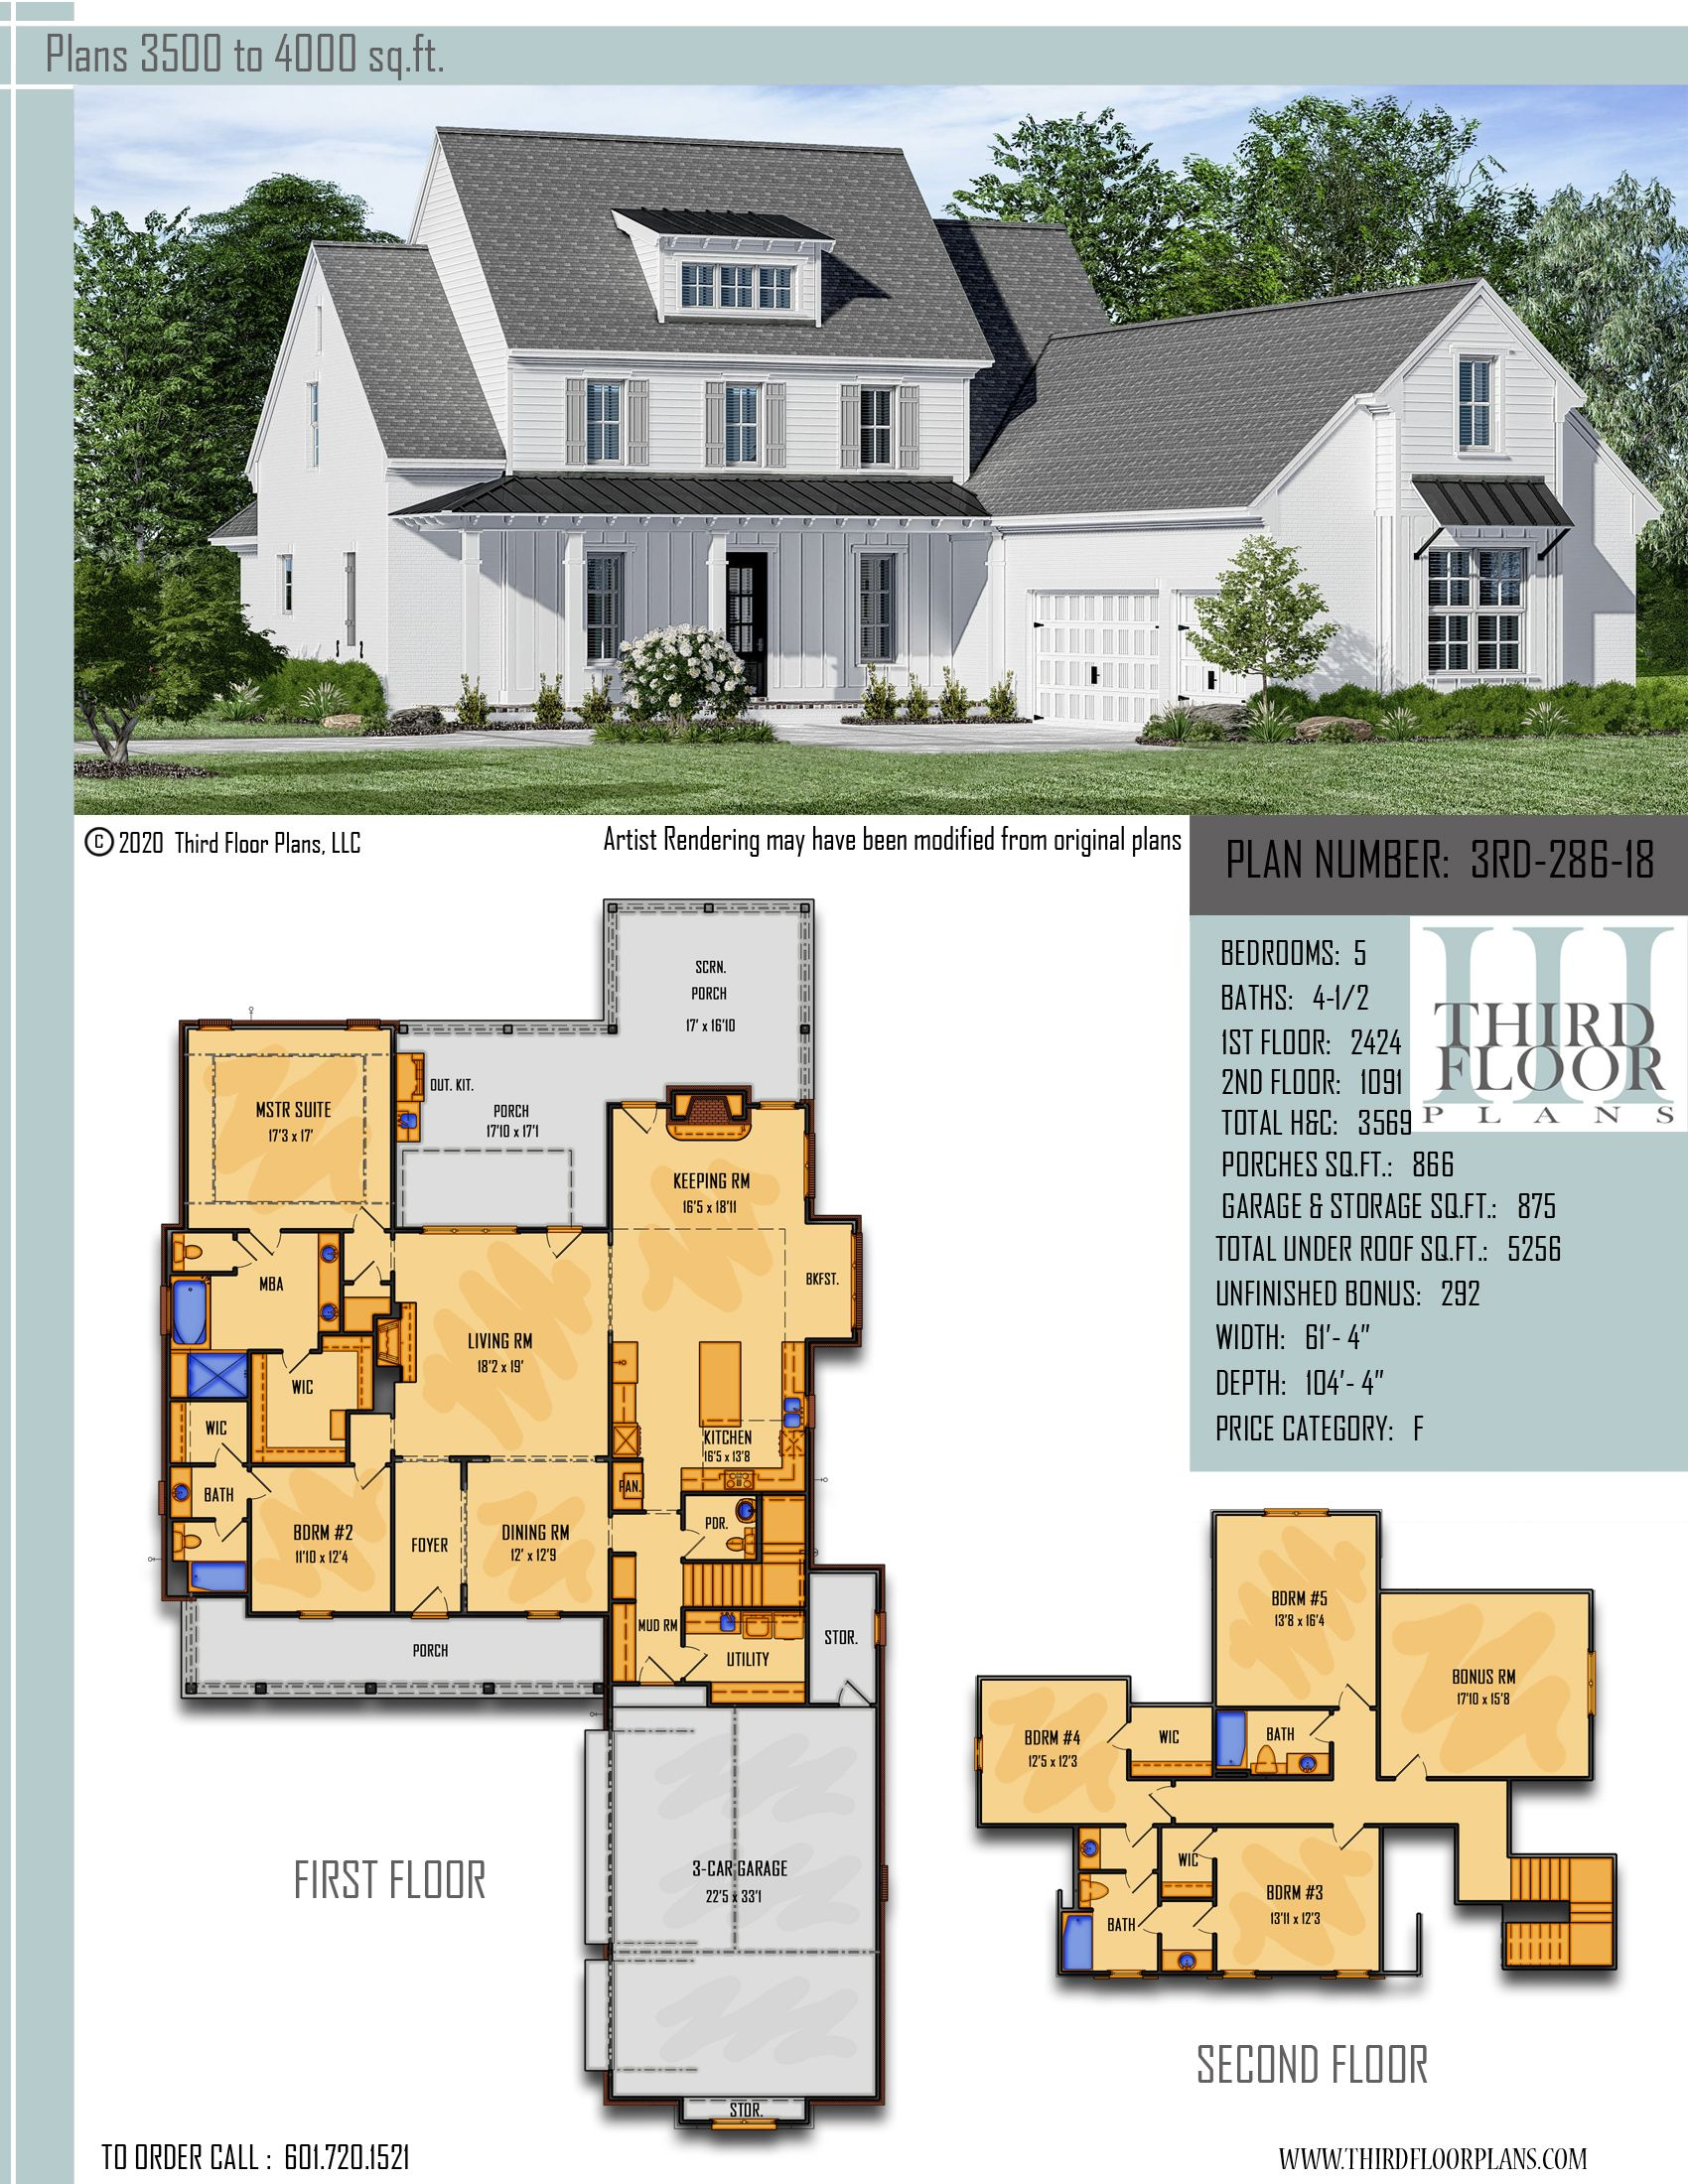 Pin On Plans 3500 4000 Sq Ft